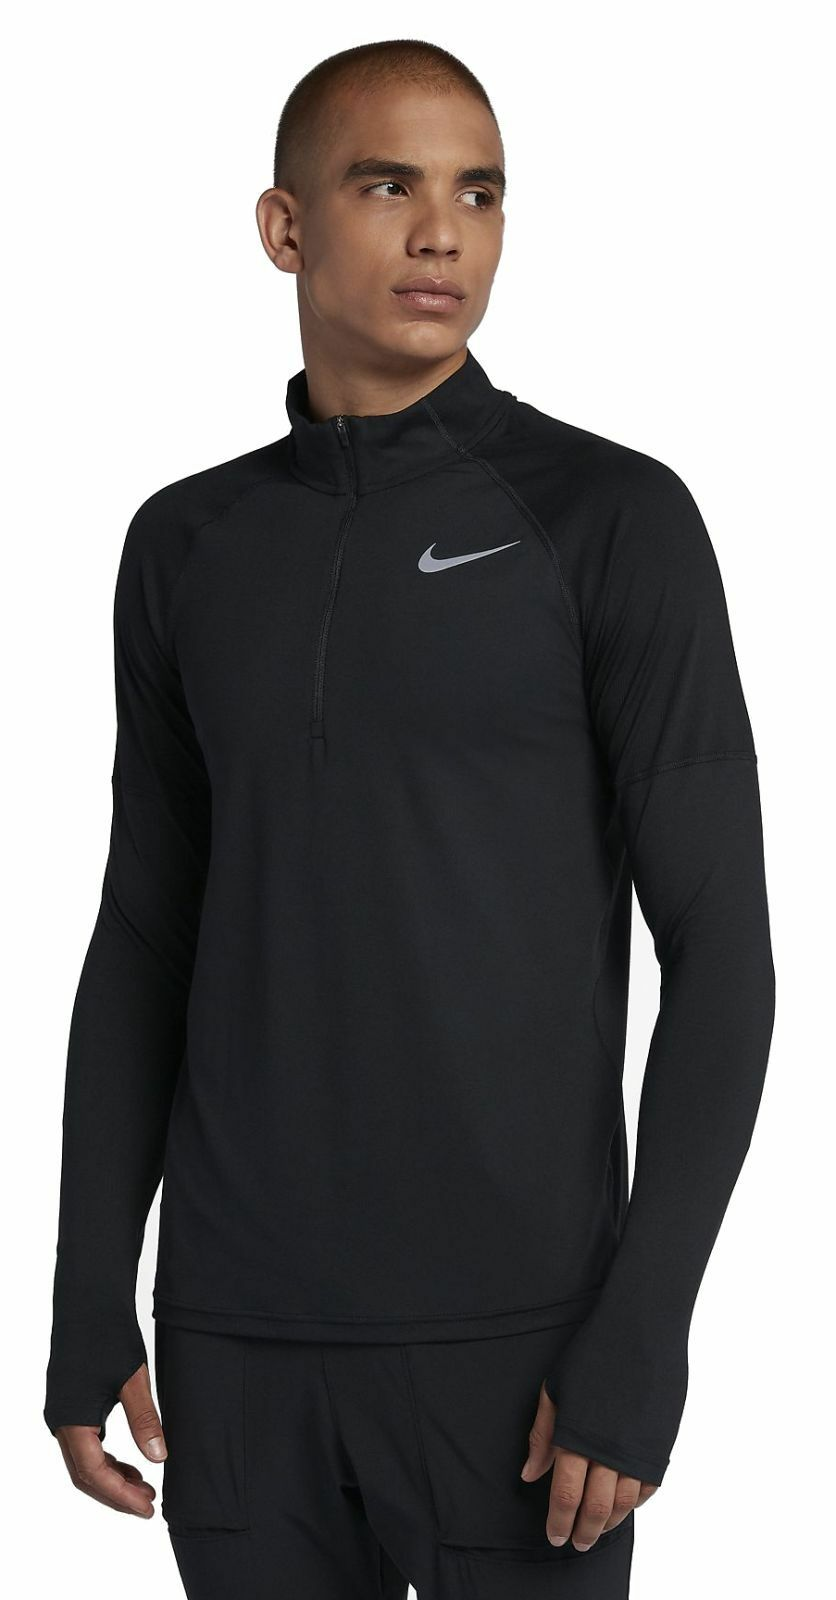 Nike Herren langarm Lauf Trainings Shirt Nike Element Top HZ 2.0 schwarz